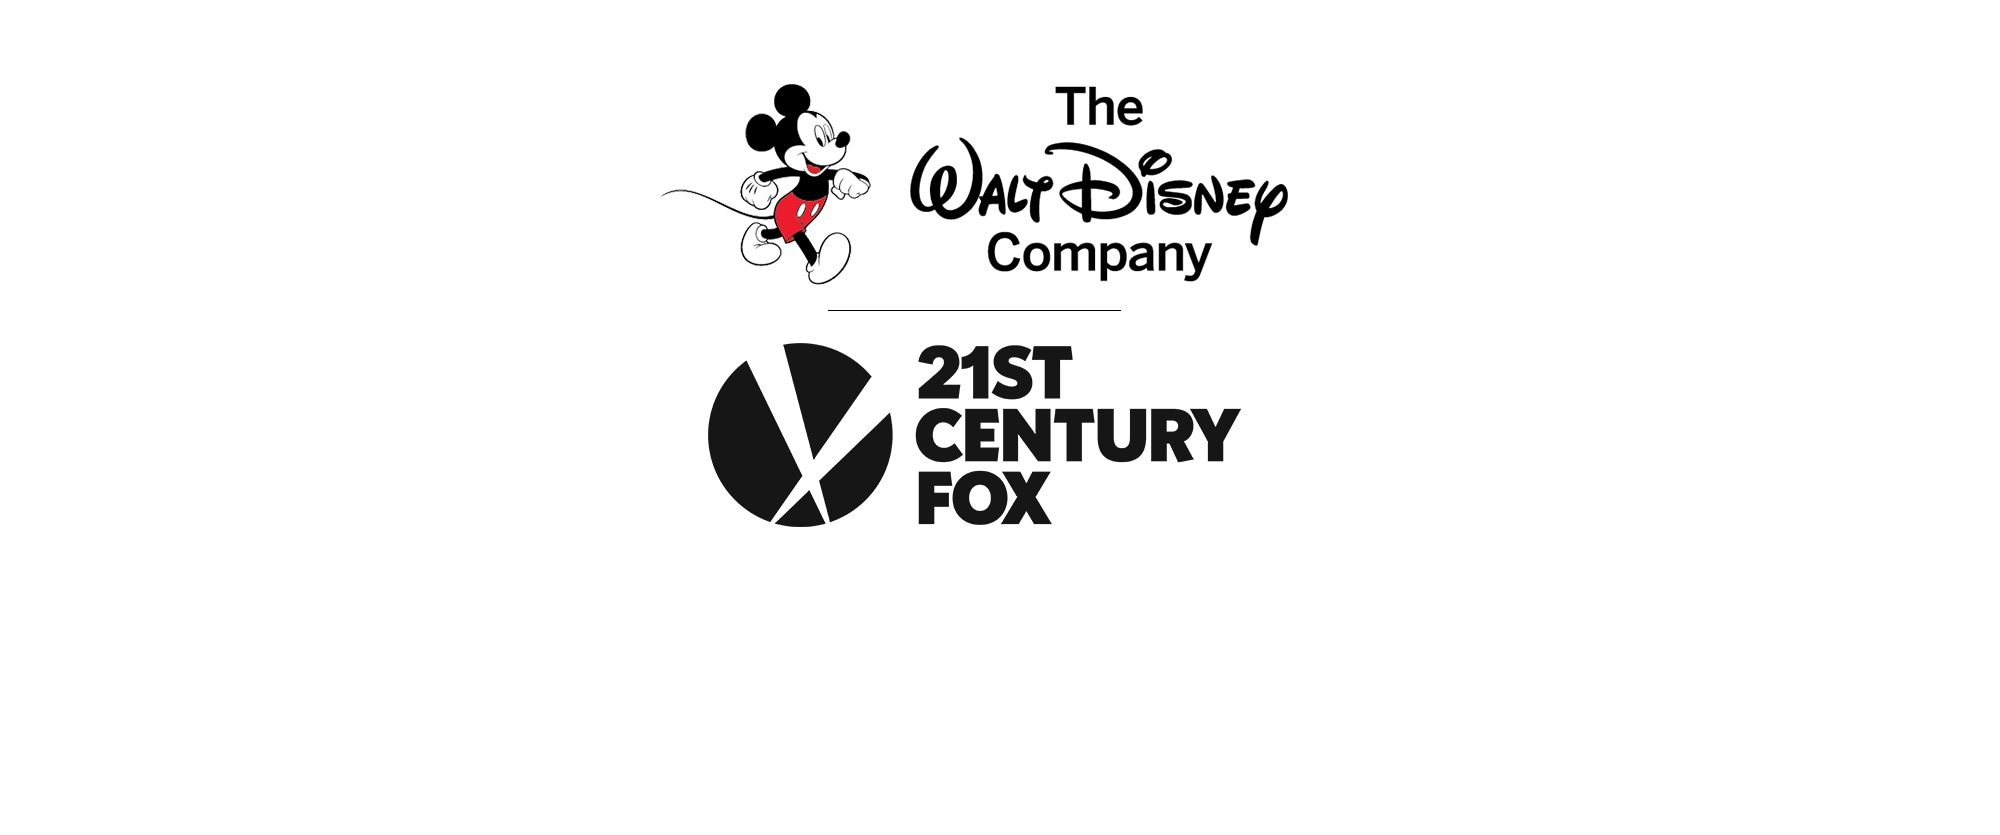 Disney Fox Announcement